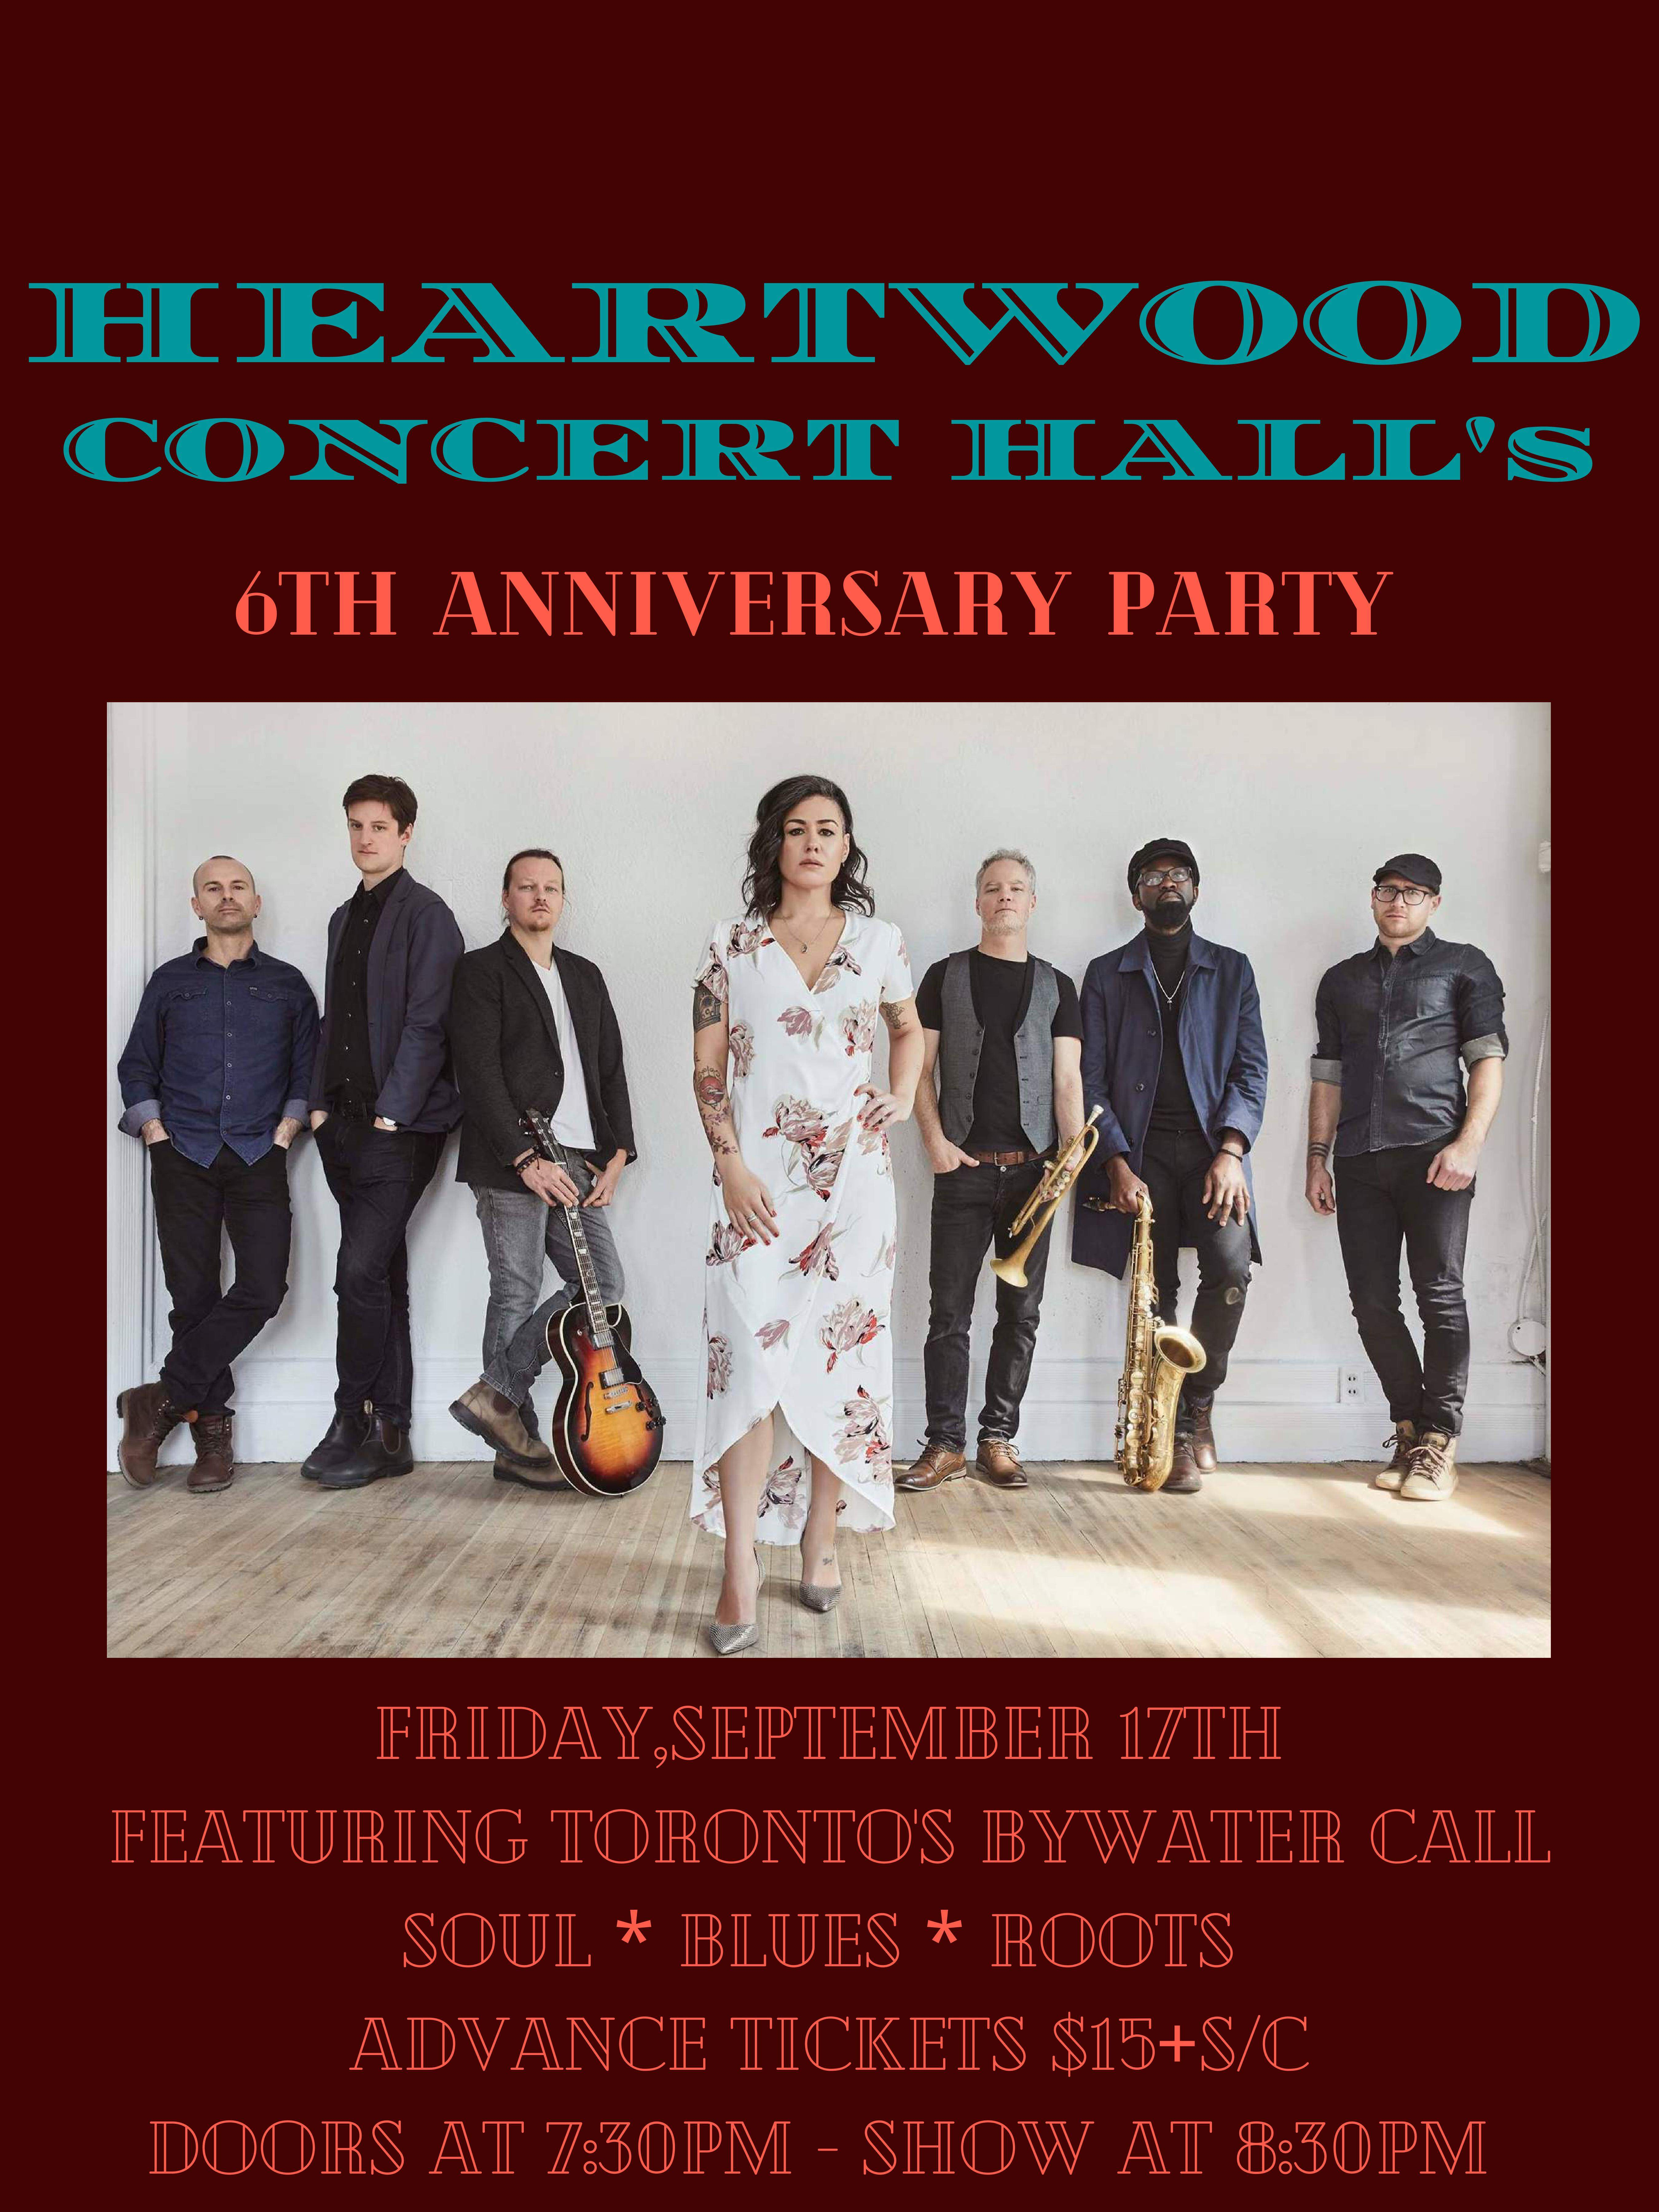 Heartwood's 6th Anniversary Party featuring Bywater Call